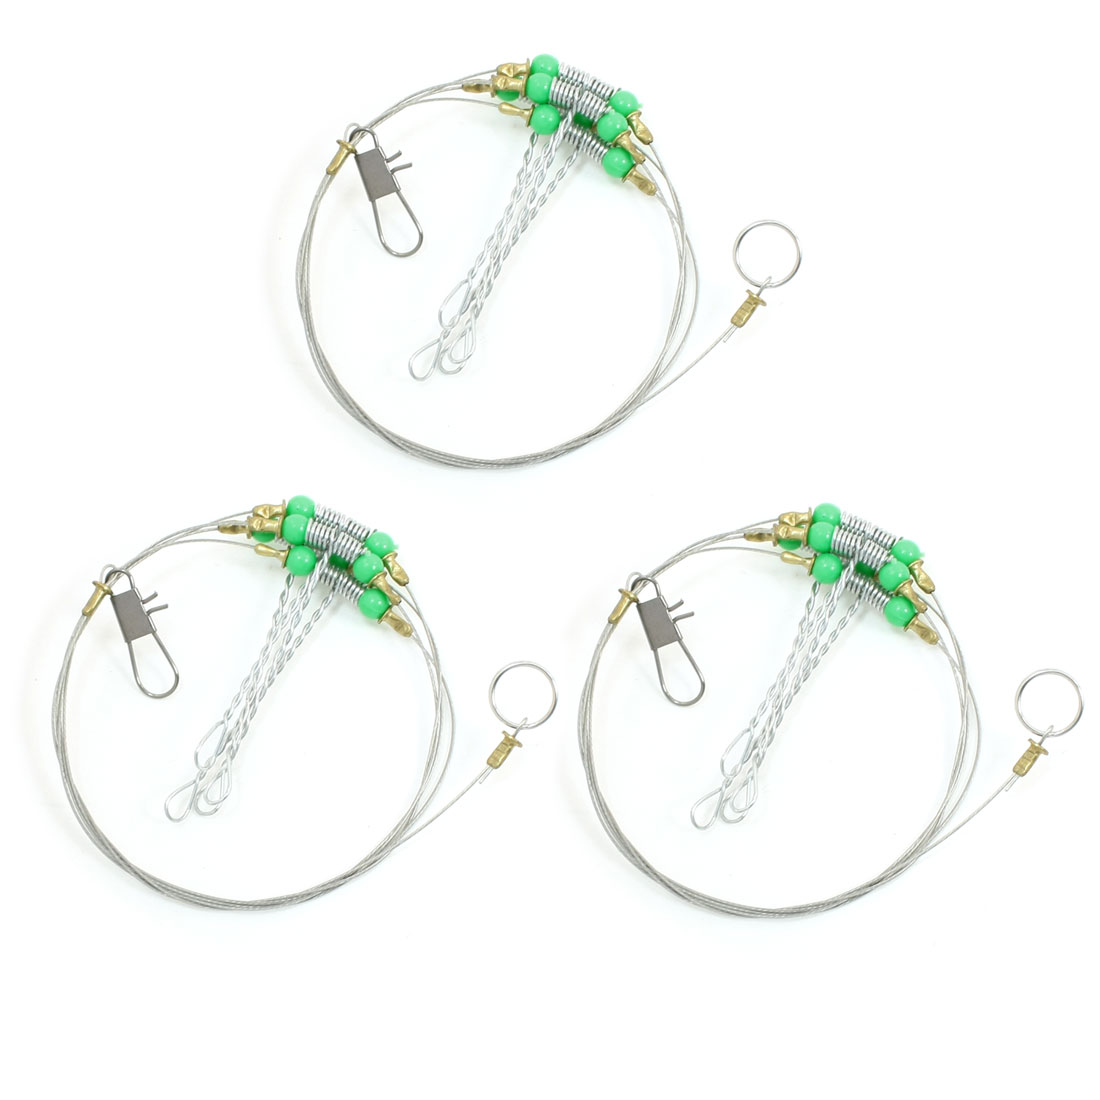 3pcs 72cm Stainless Steel Fishing Trace Fish Wire Leader Swivel w Snap